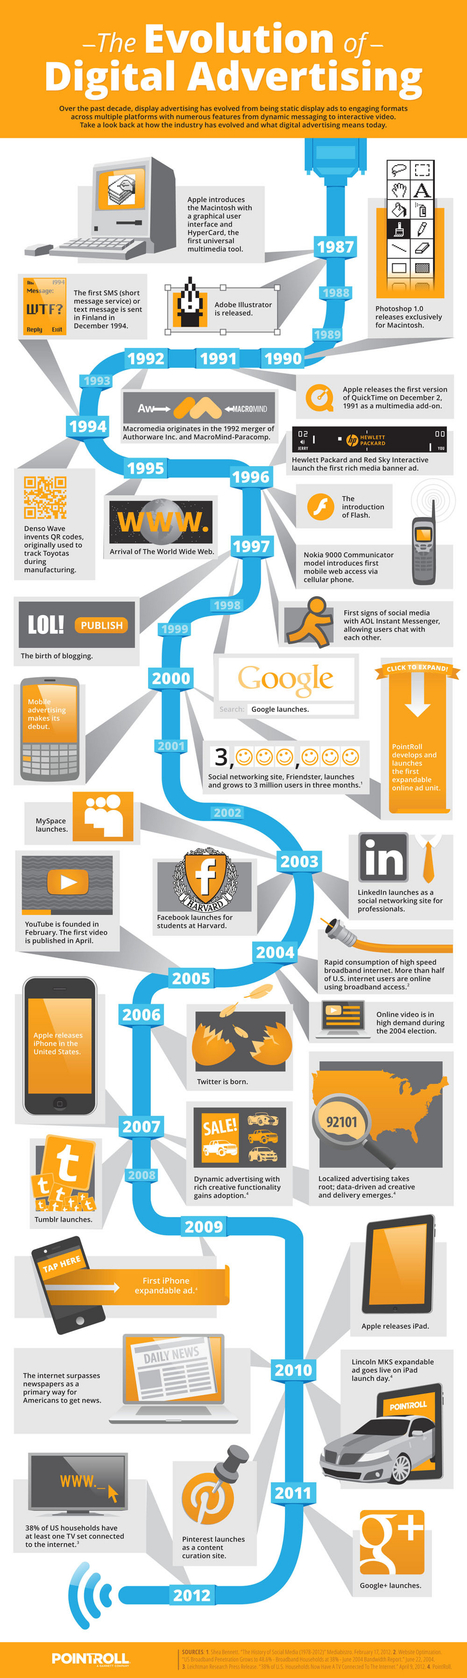 The Evolution of Digital Advertising [INFOGRAPHIC] | Digital & Social Media Marketing | Scoop.it